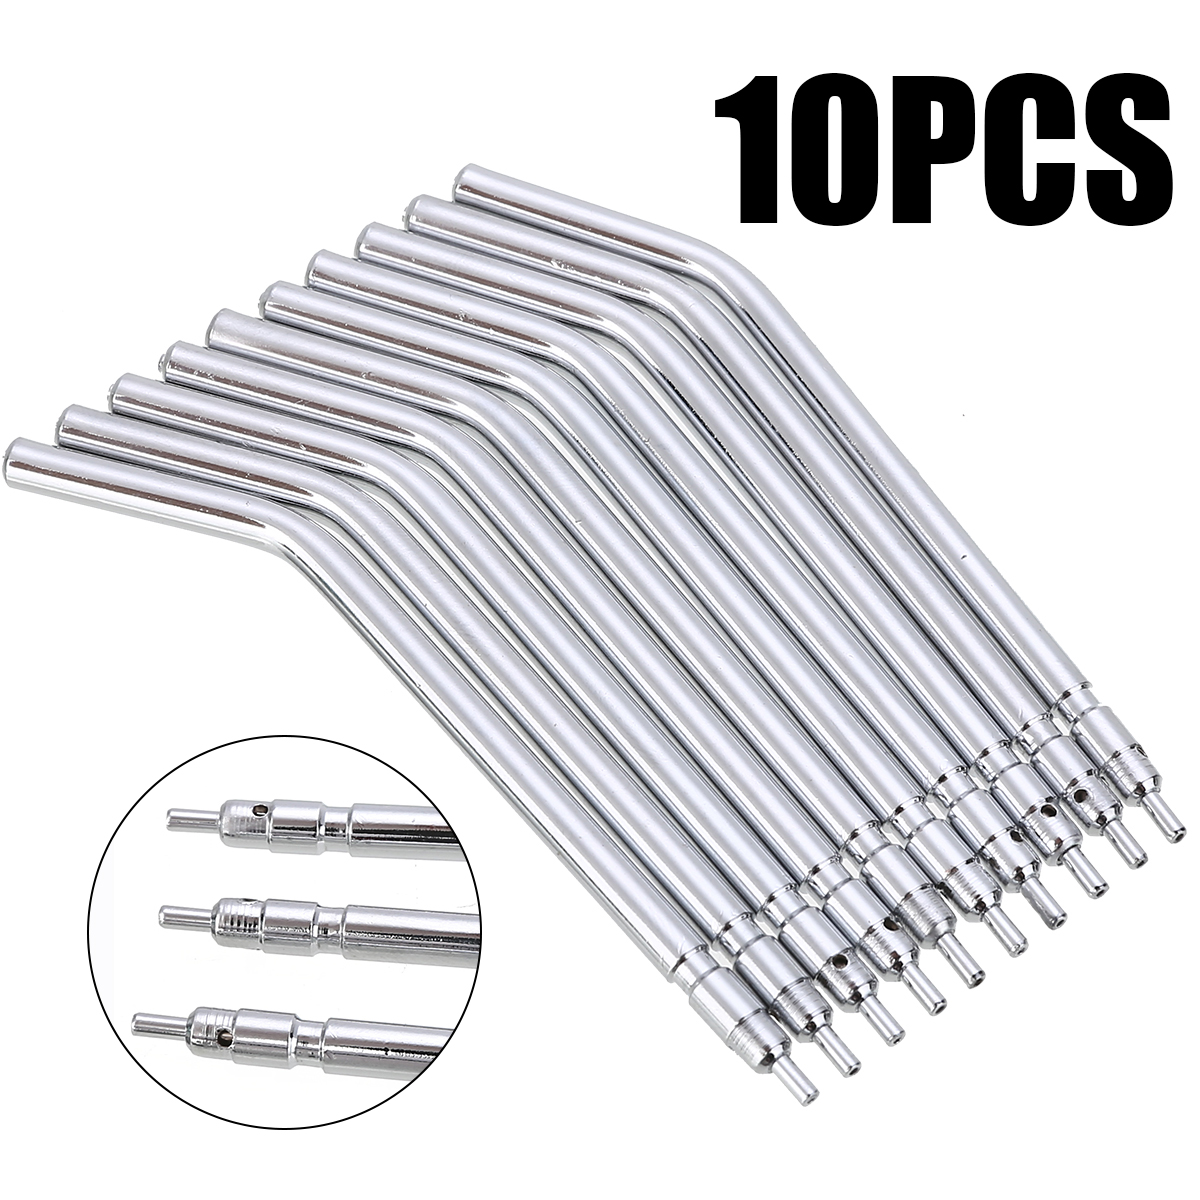 10pcs 3 Way Dental Air Water Syringe Spray Nozzles Tips Tube Stainless Steel  Syringe Spray Nozzles Tips For Teeth Whitening